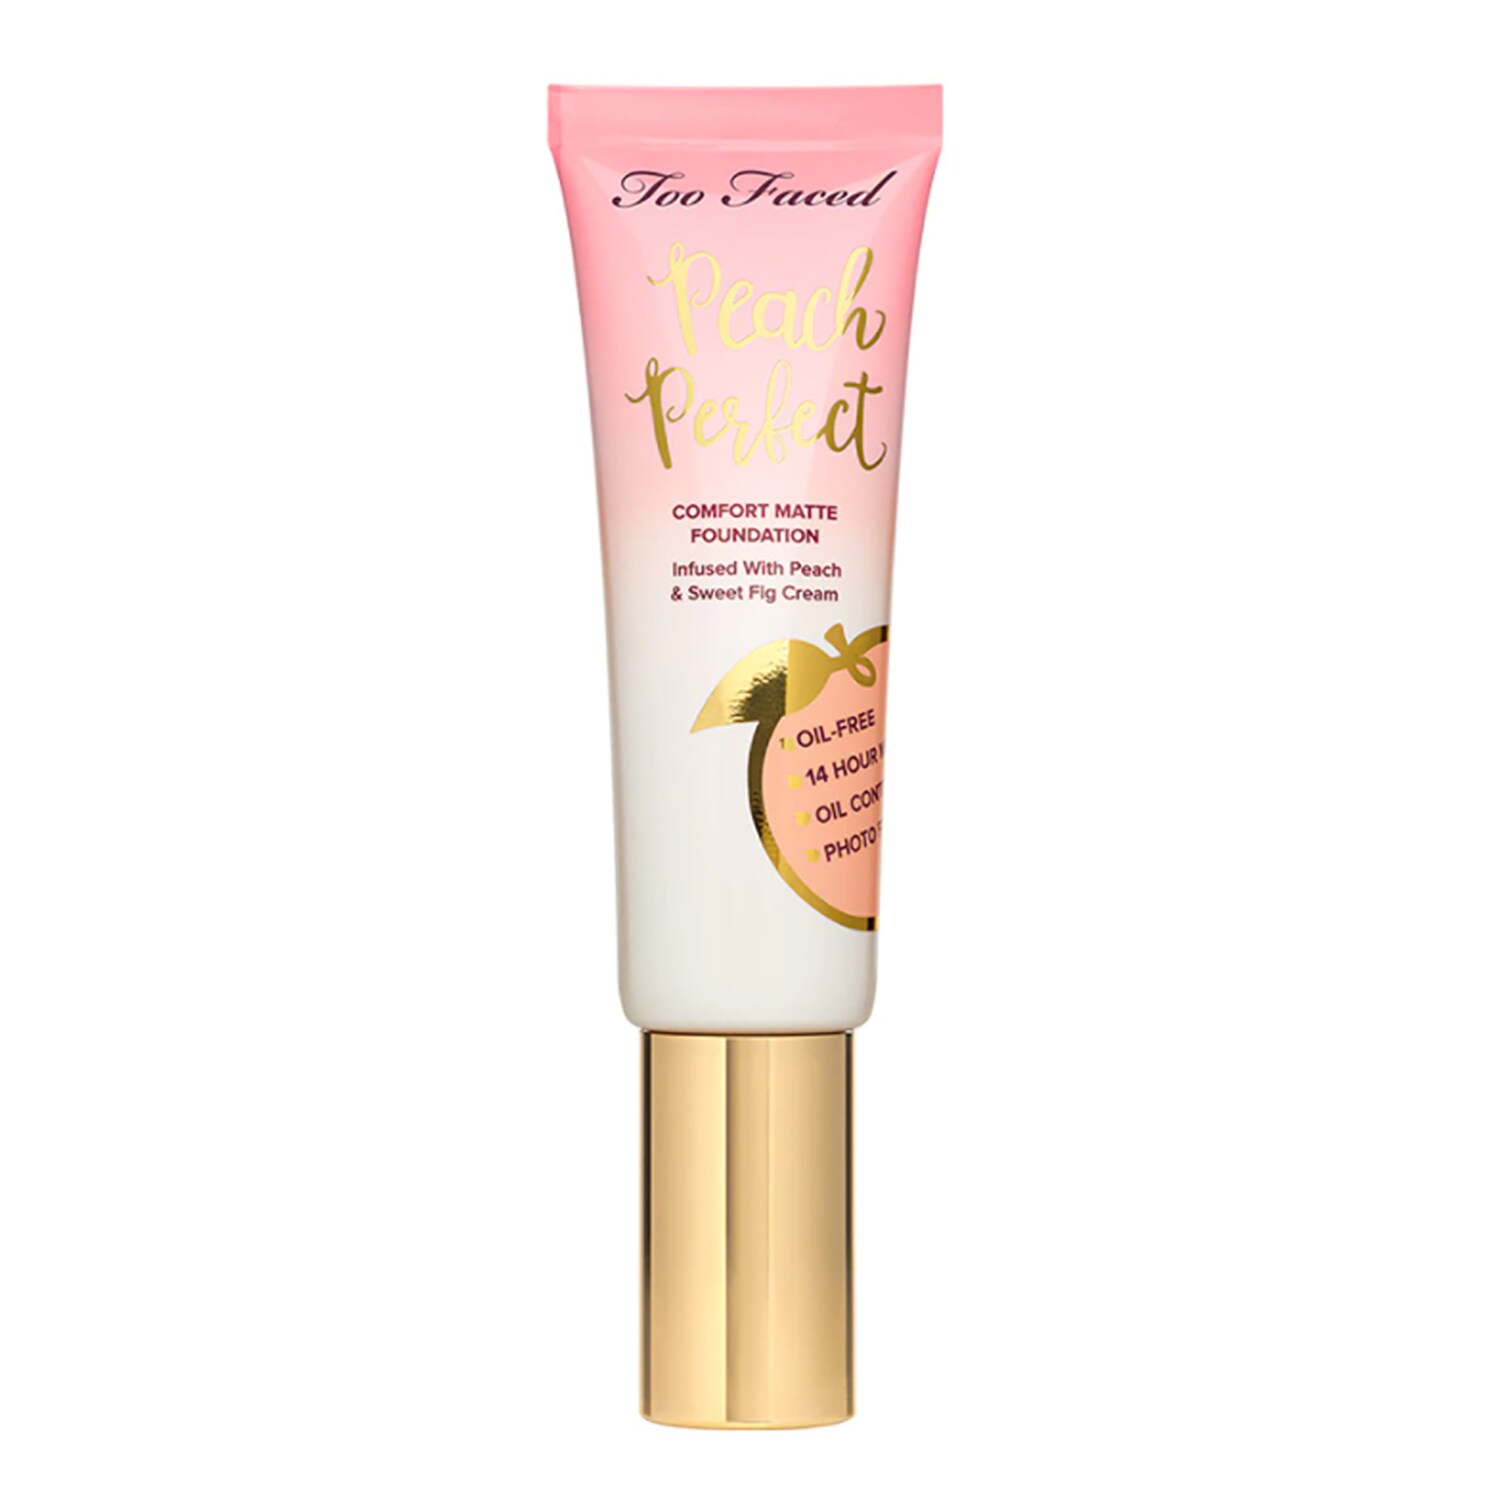 Peach Perfect - Foundation